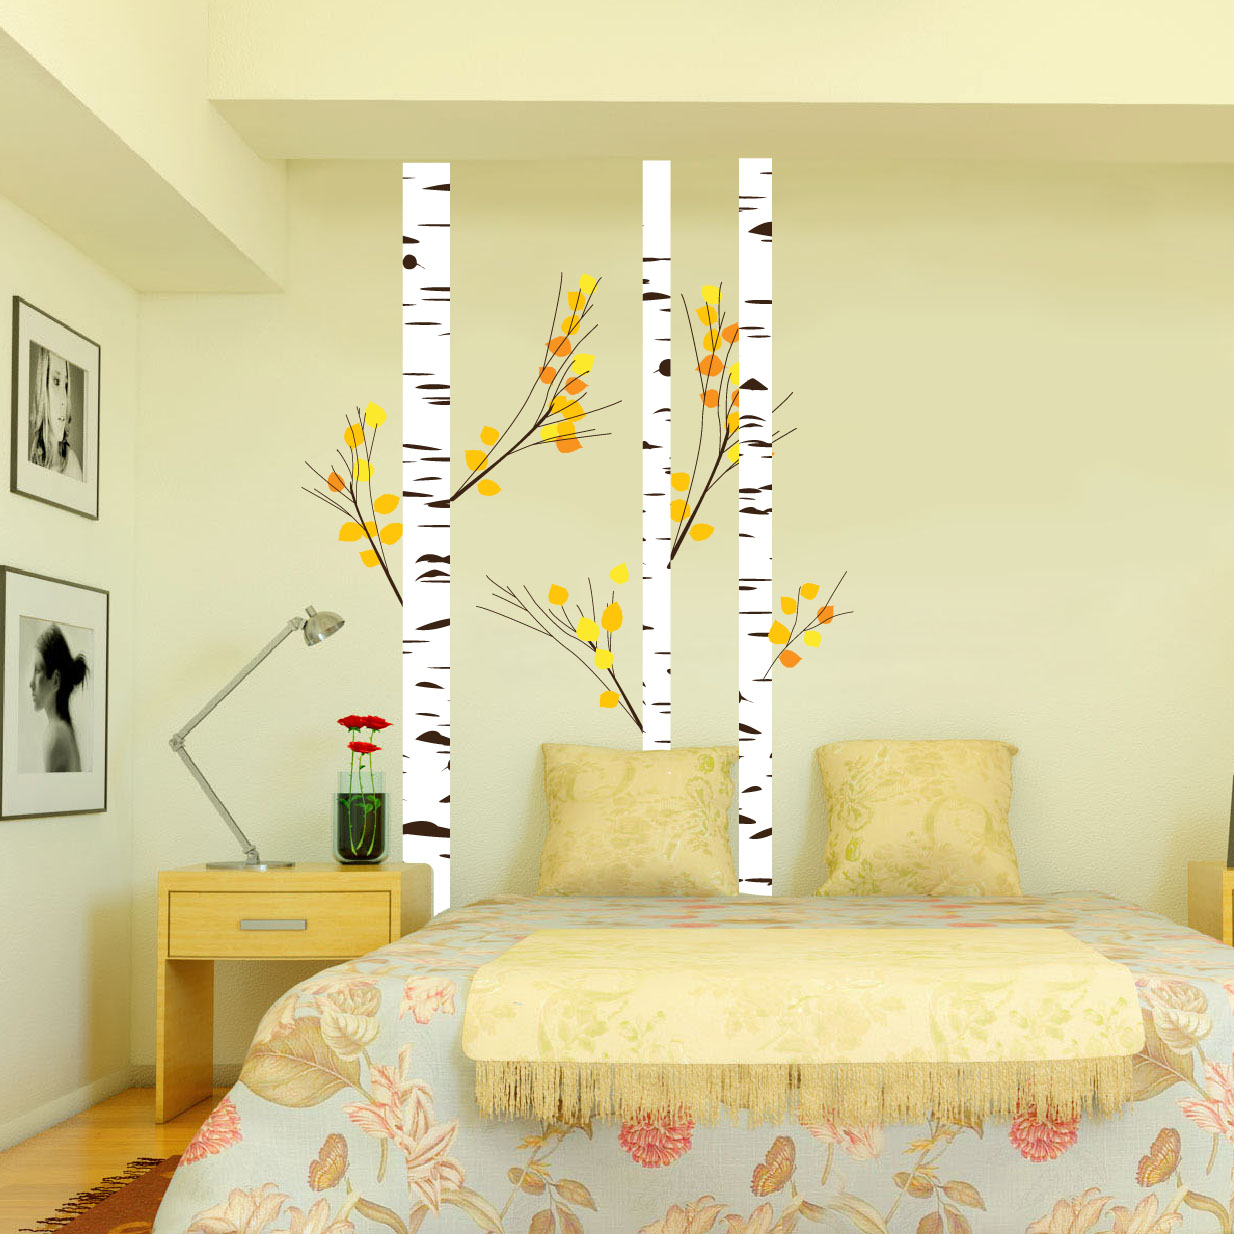 1273-birch-tree-wall-bedroom-decal-fall.jpg